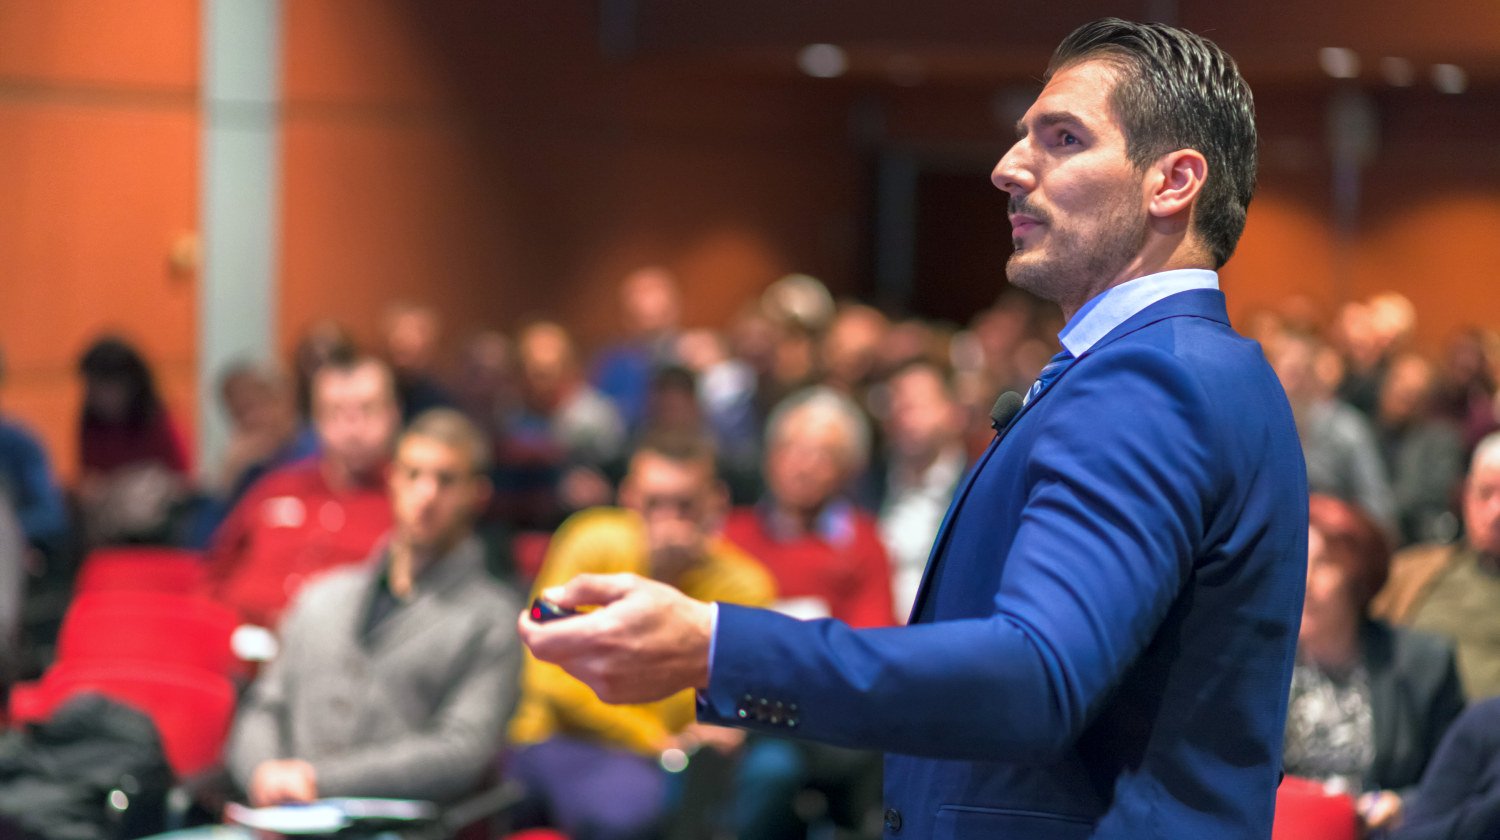 Speaker giving a talk on corporate Business Conference   The Best Ted Talks Of All Time   what are the best ted talks reddit   Featured